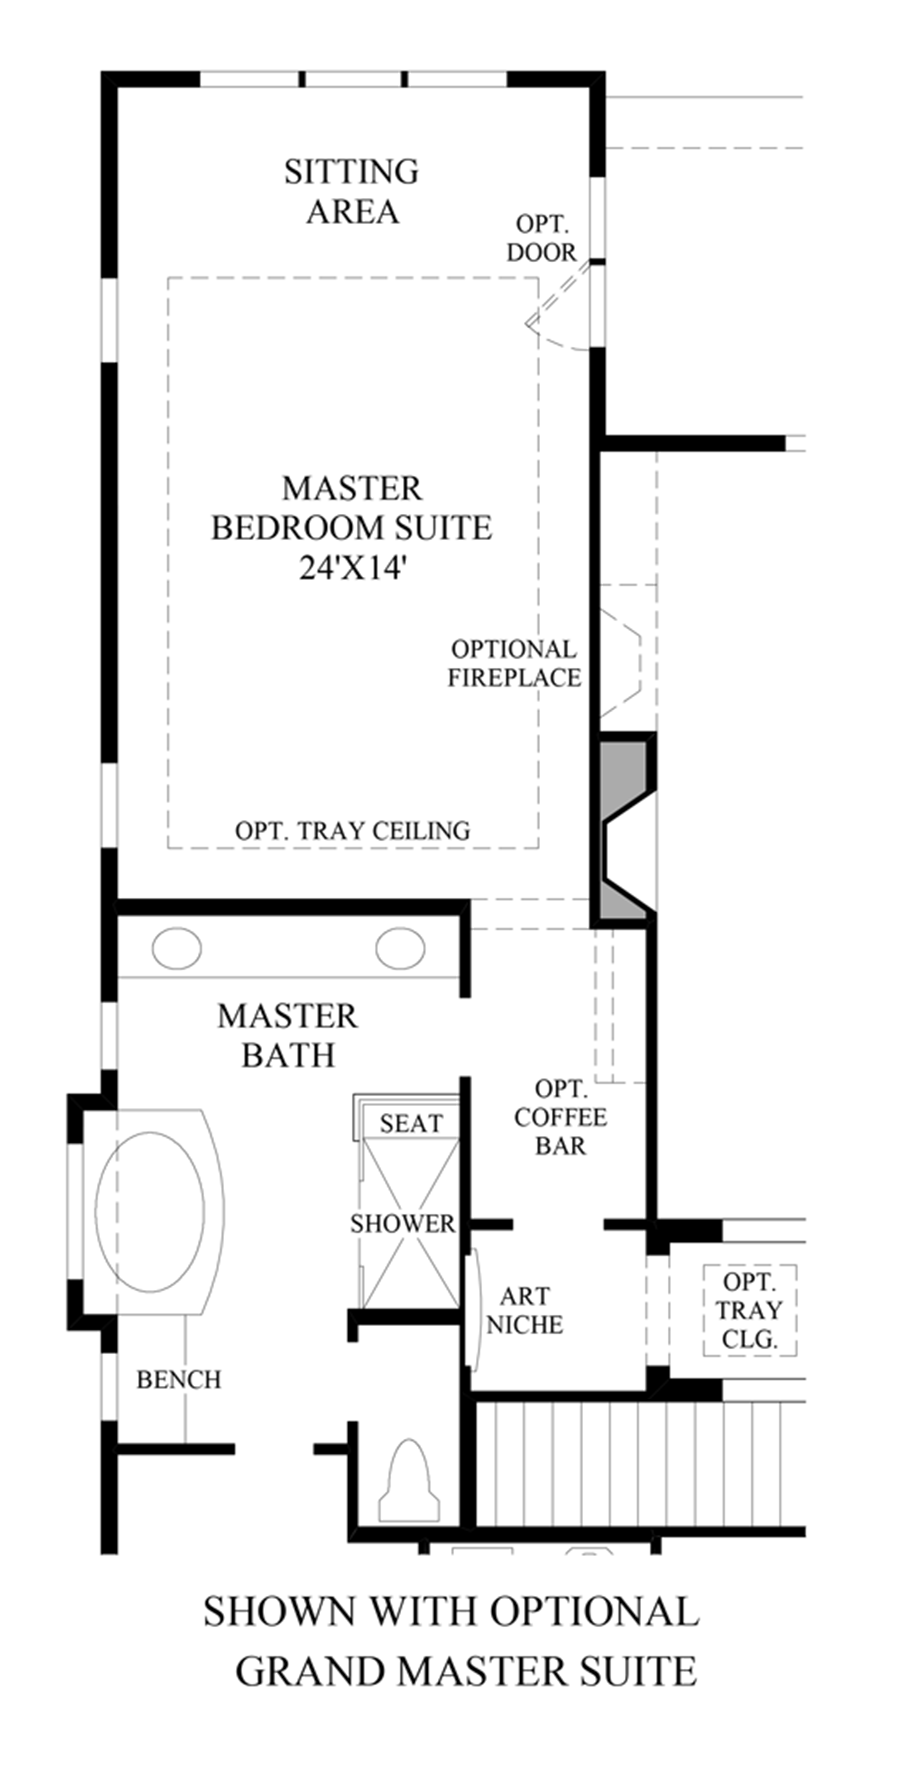 Optional Grand Master Suite Floor Plan